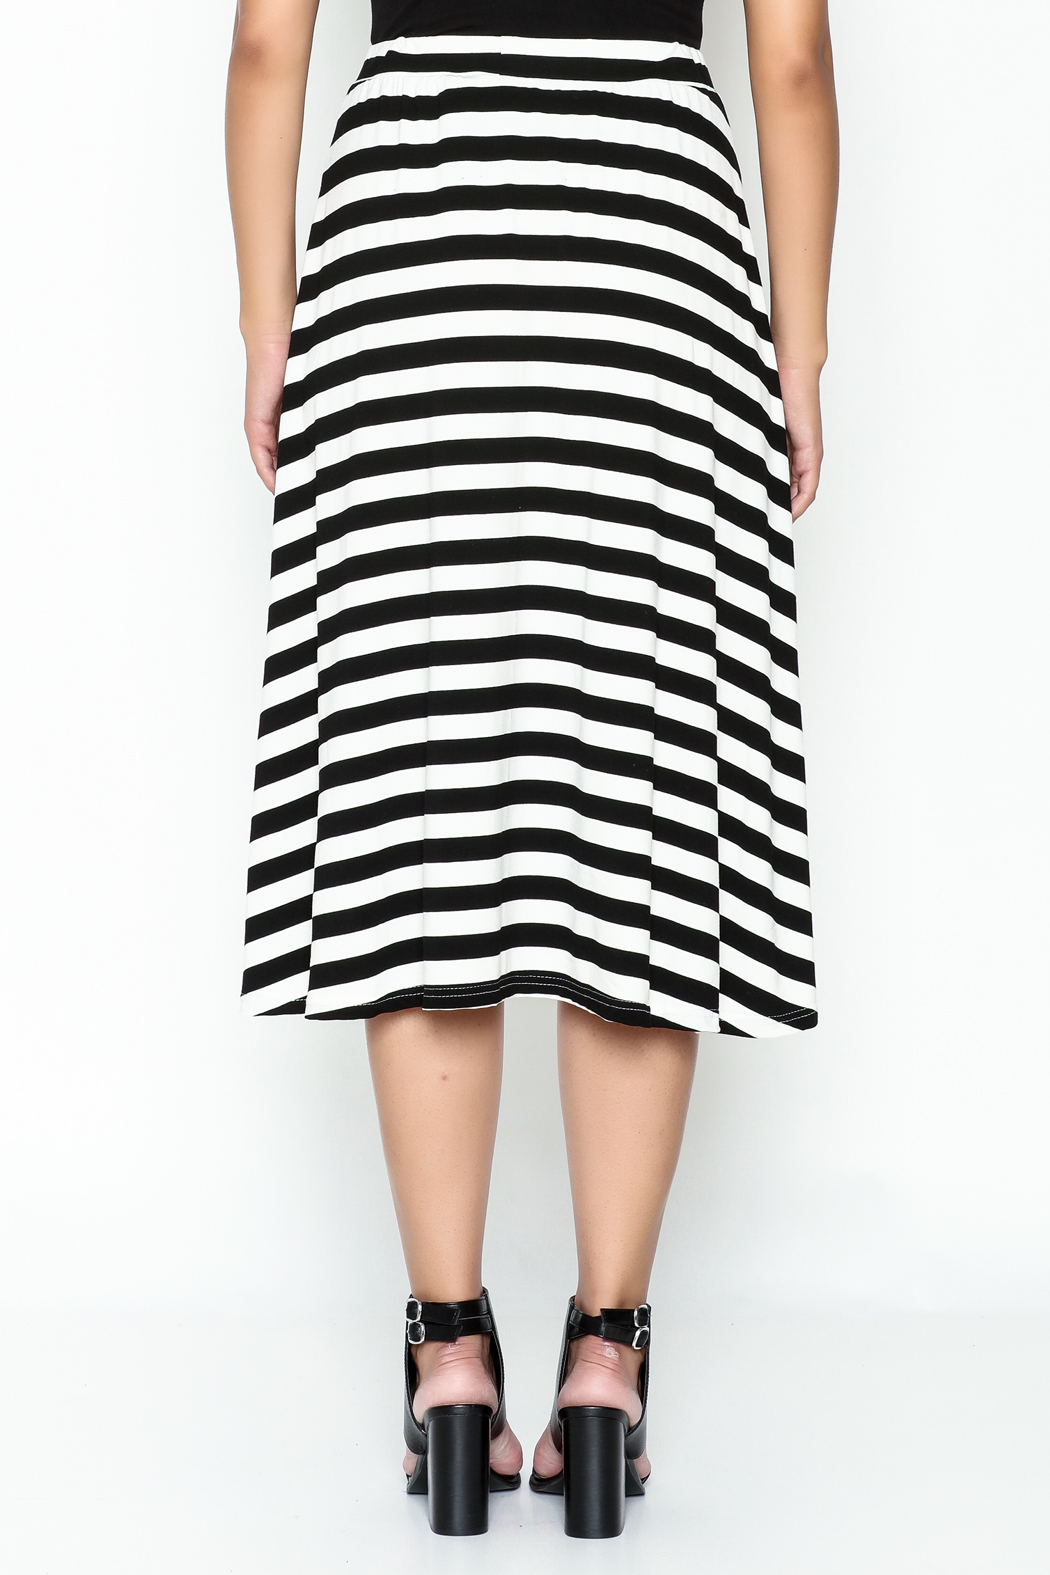 Coco + Carmen Striped Hi Low Skirt - Back Cropped Image